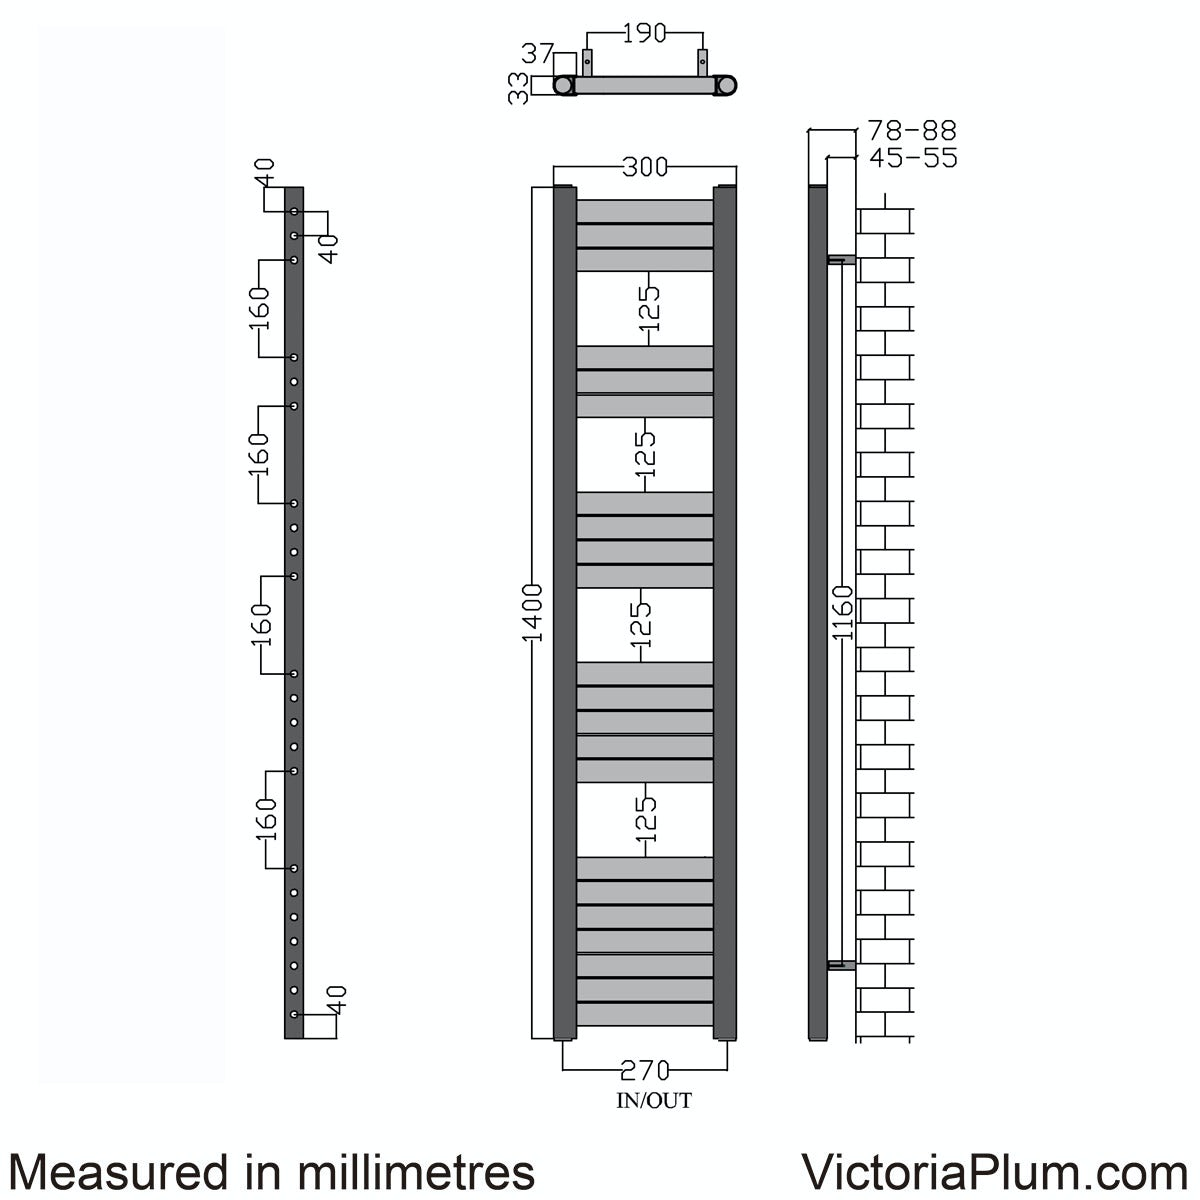 Dimensions for Champagne heated towel rail 1400 x 300